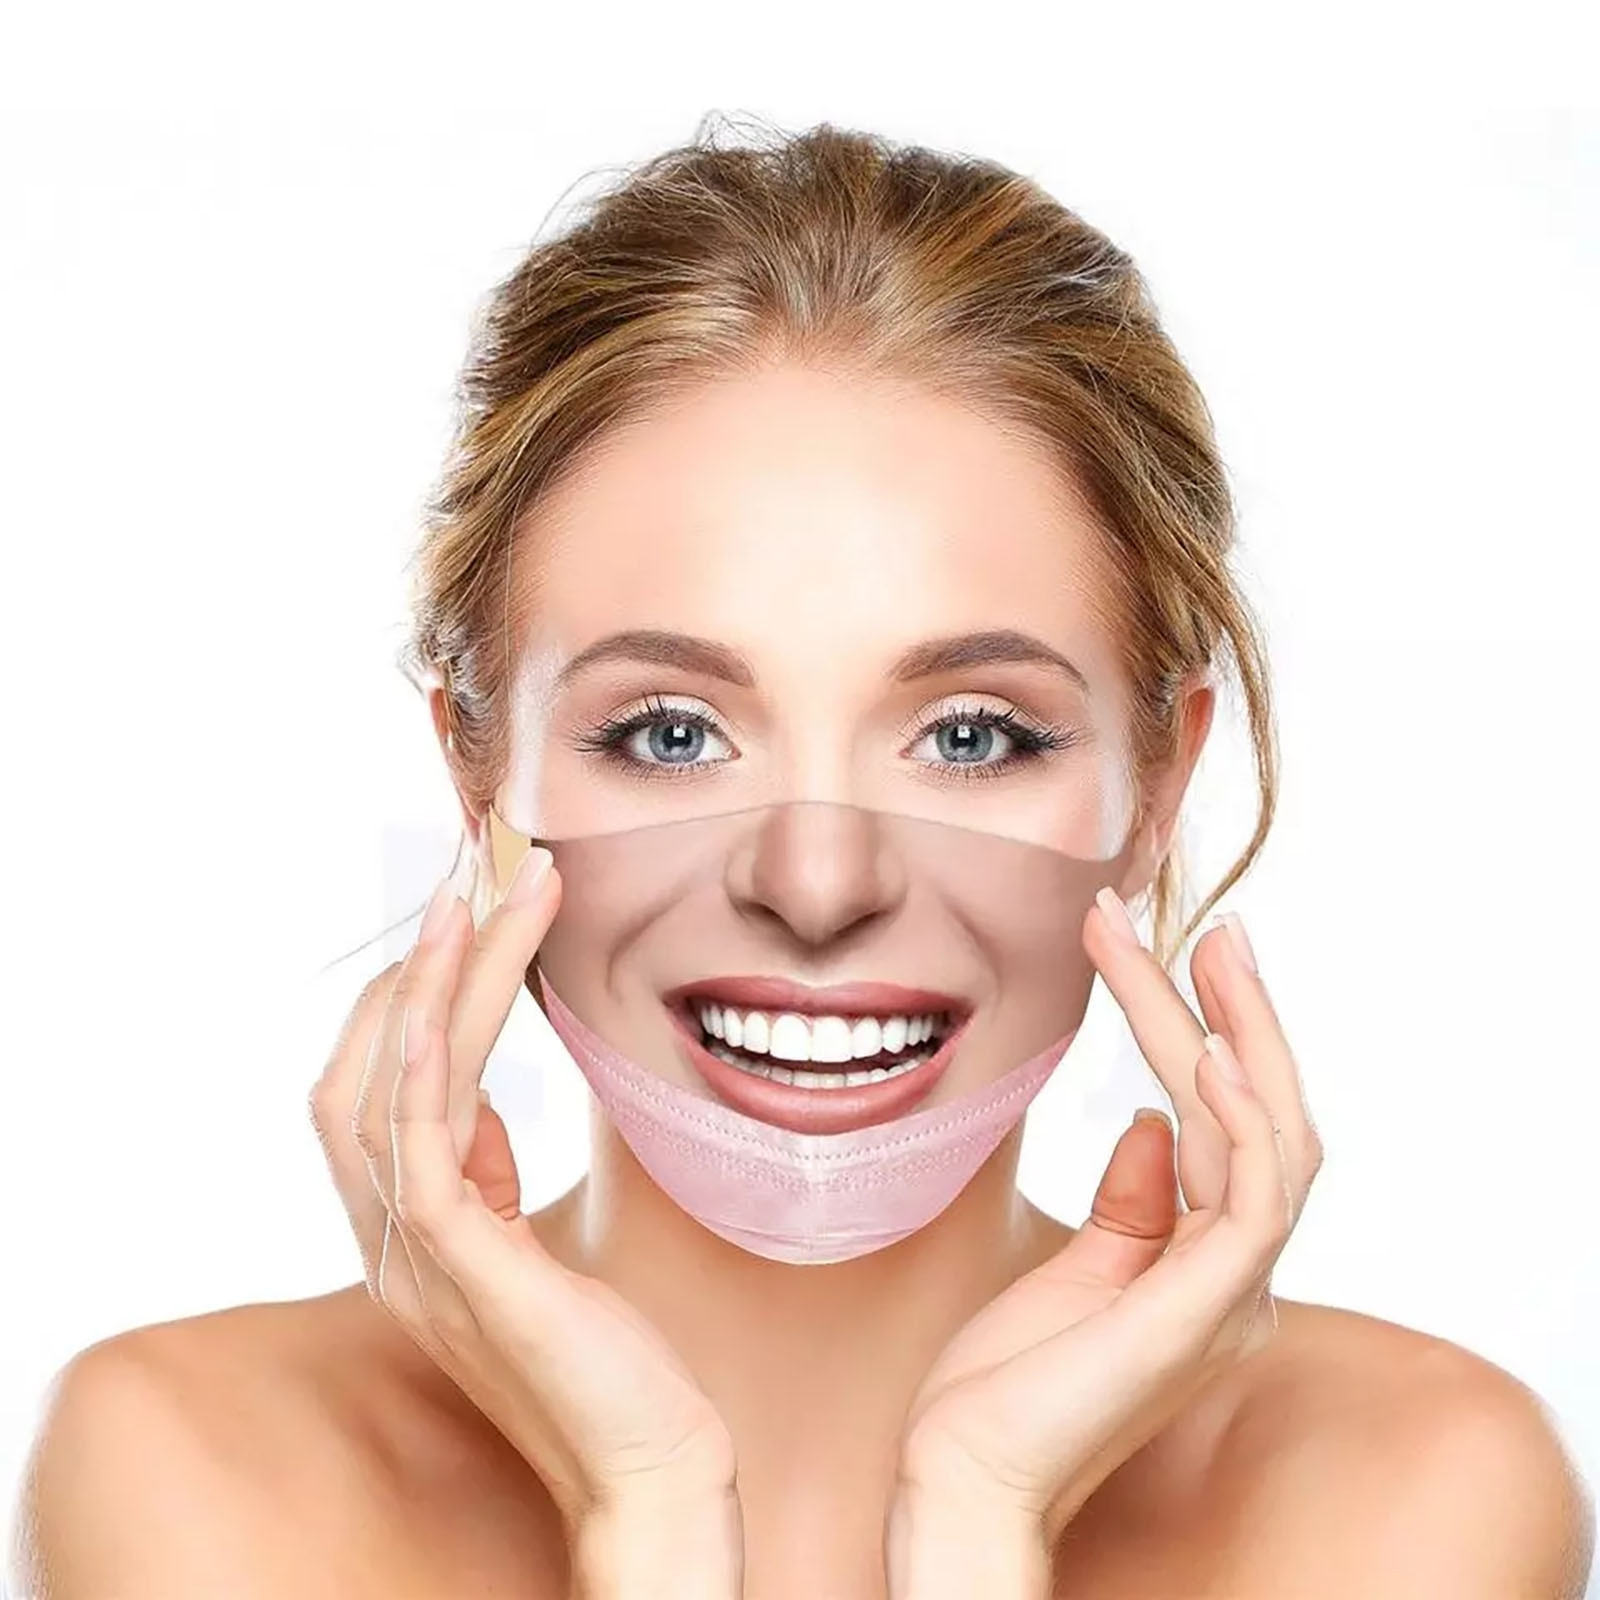 Funny 3D Human Face Mask (BUY 1 GET 1 FREE)